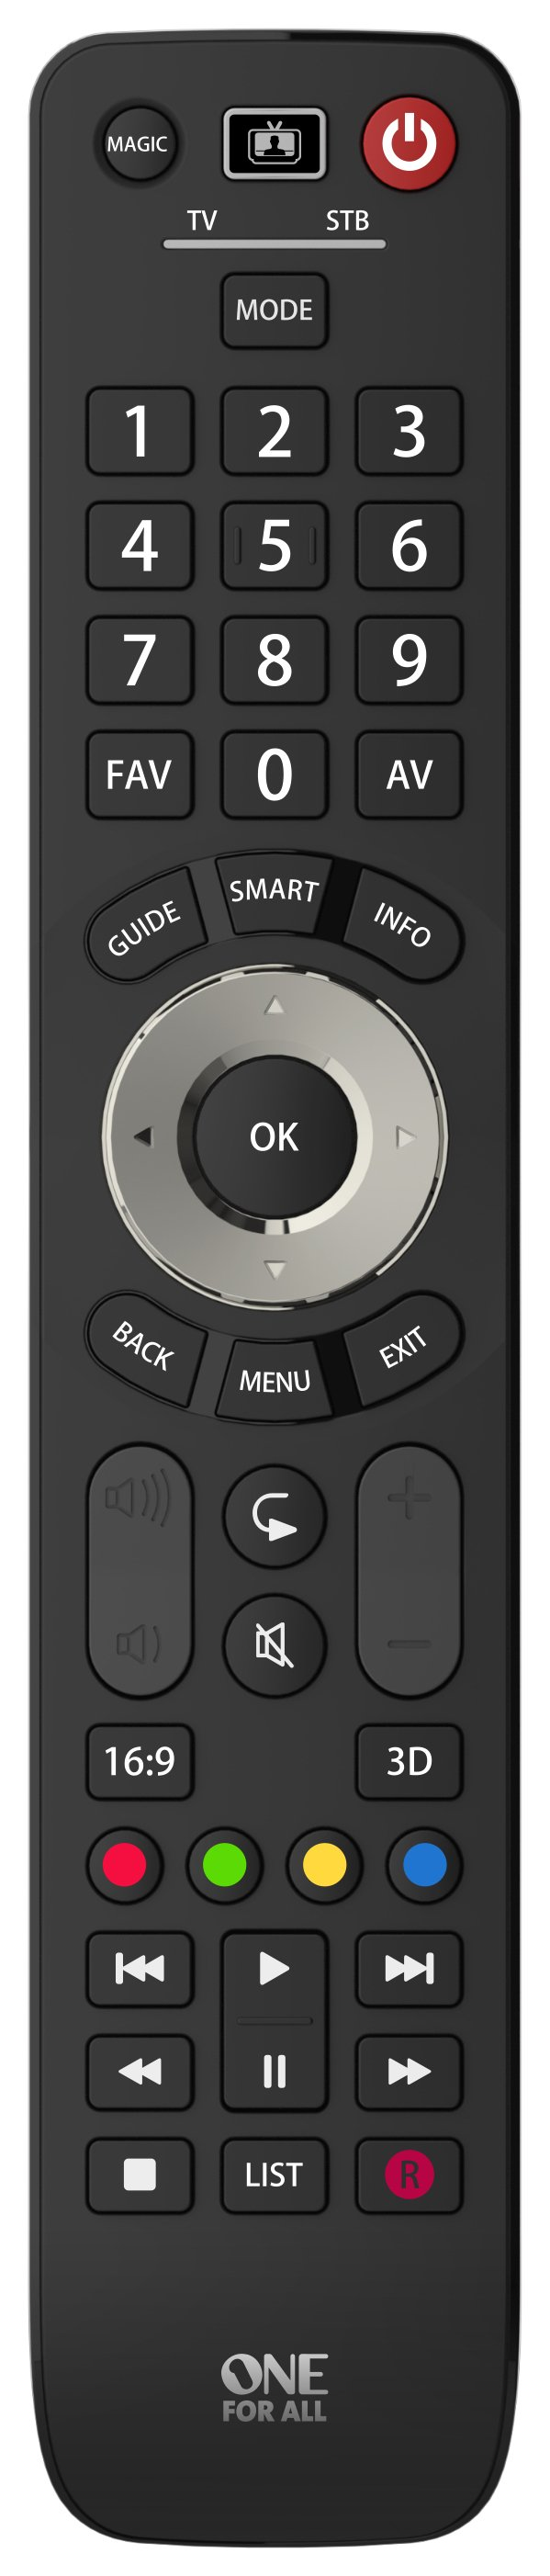 Televisions Page 4 Argos Price Tracker 2 Way Hdmi Switch One For All Evolve Universal Remote Control